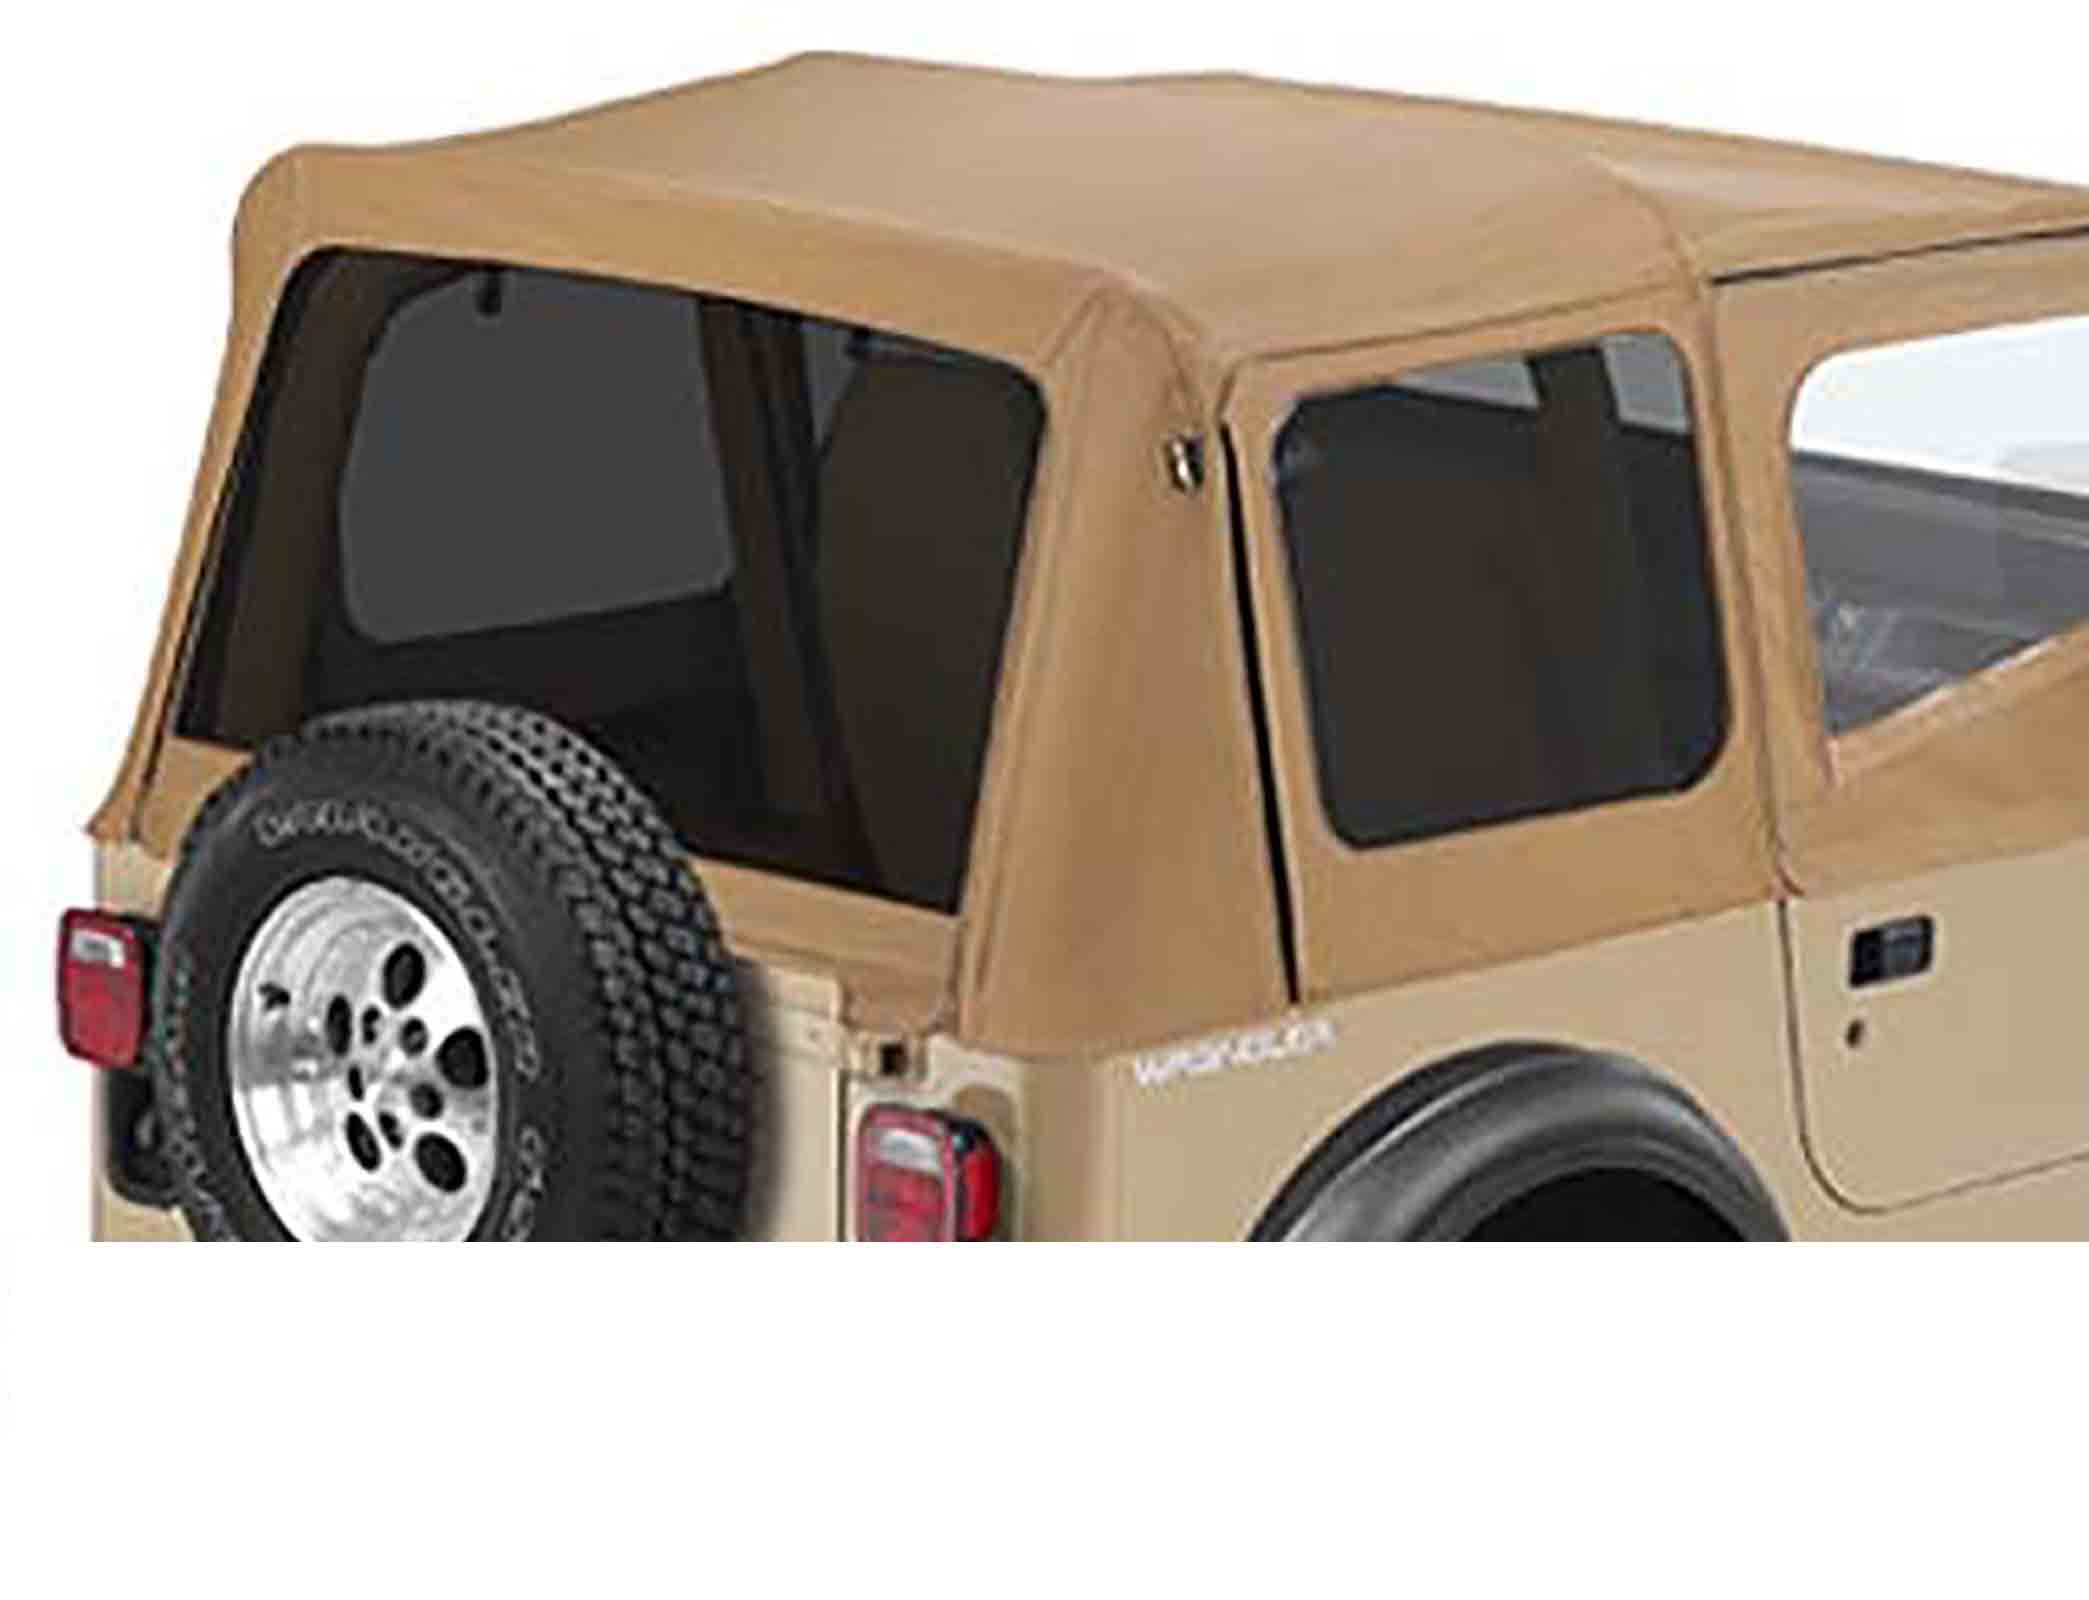 Vetri scuri wrangler yj 88 95 adatto per 51120 softtop soft top capottina ricambio colori: spice rica